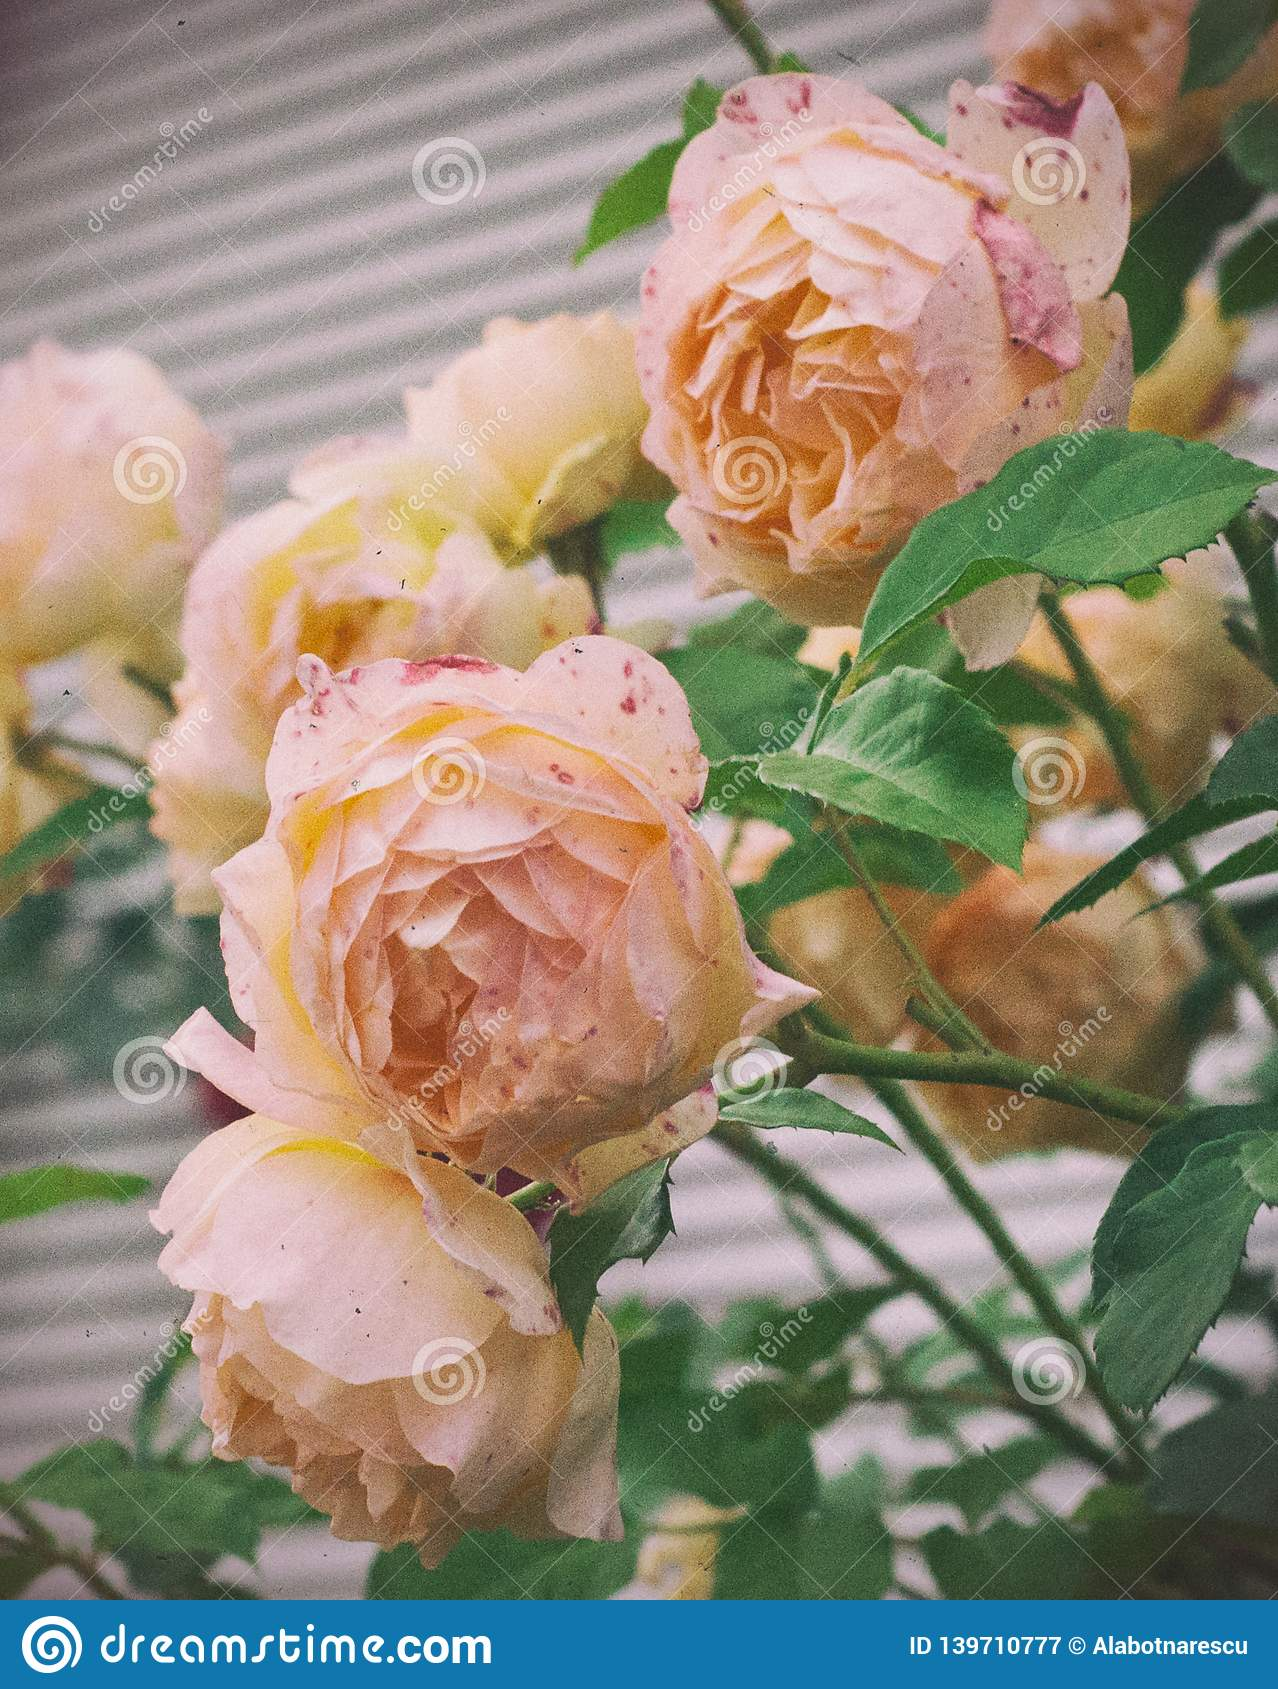 Beautiful shrub of Yellow, pink roses. Vintage photo of pink, yellow roses